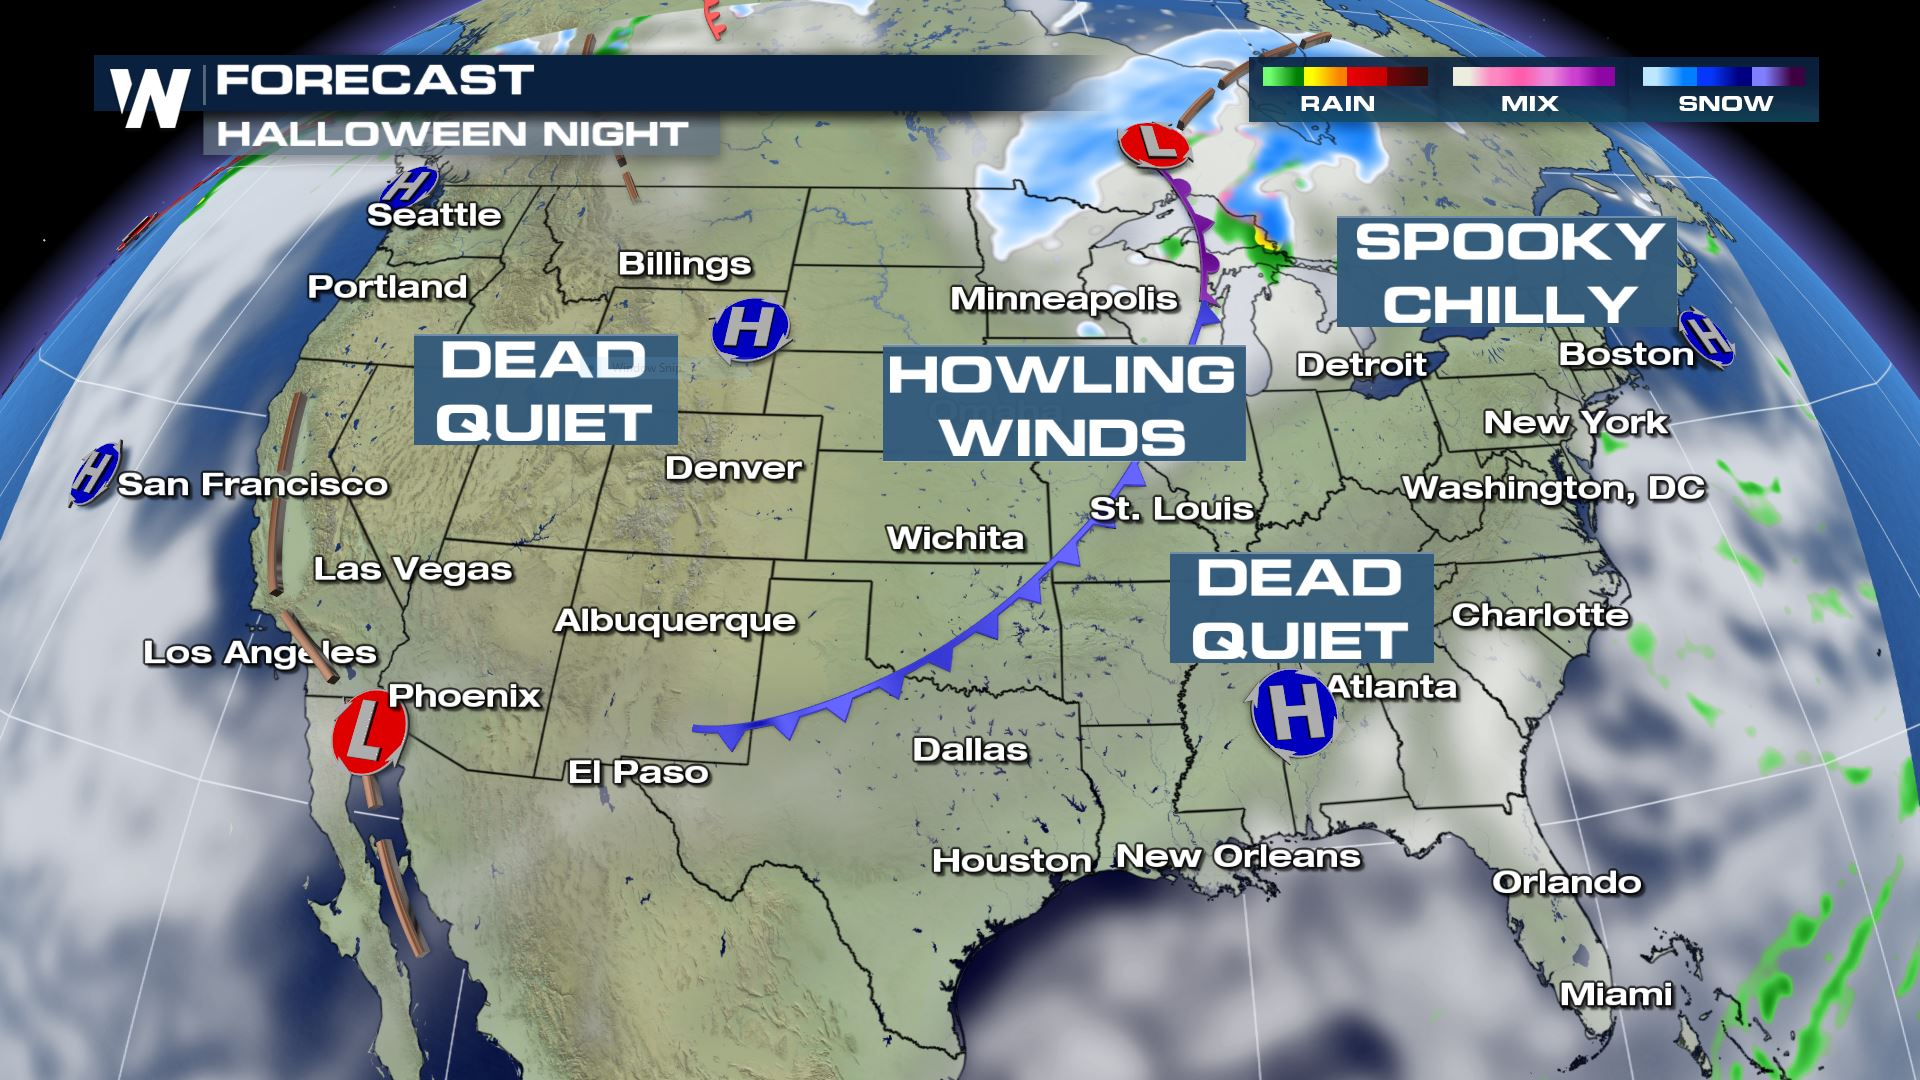 Halloween forecast mostly quiet across the US